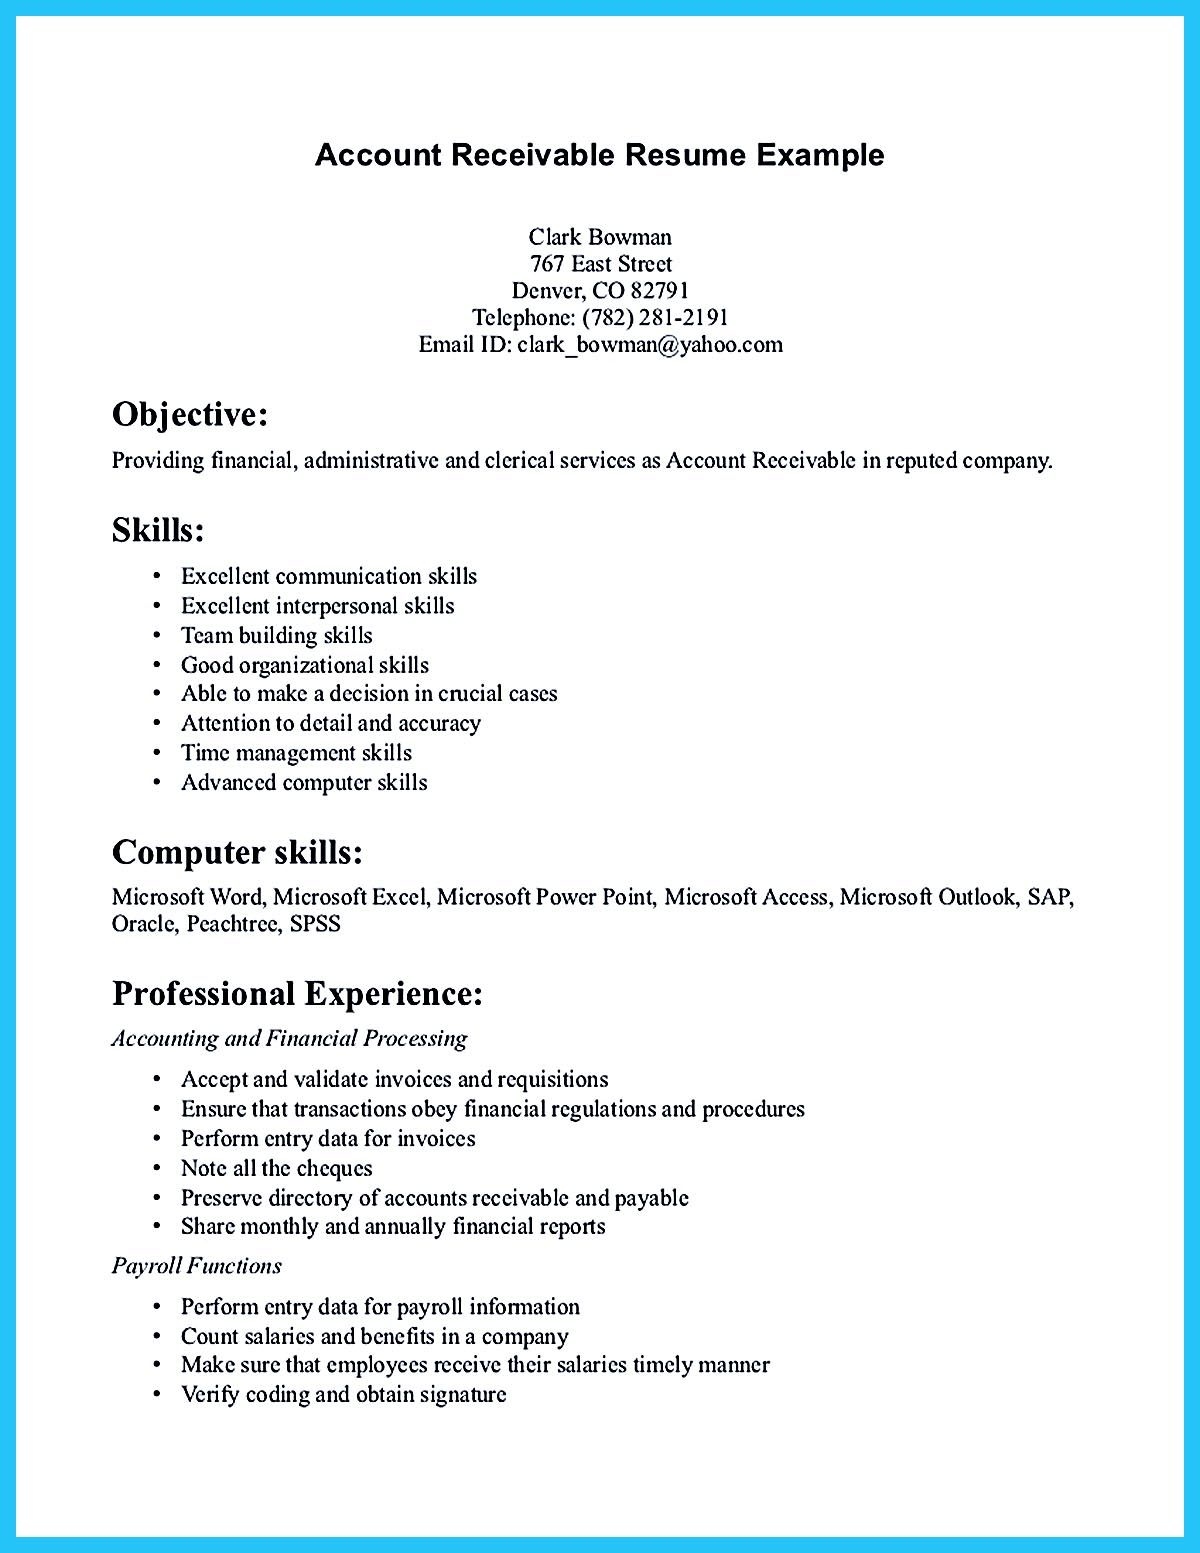 Strengths Resume Accounts Receivable Resume Presents Both Skills And Also